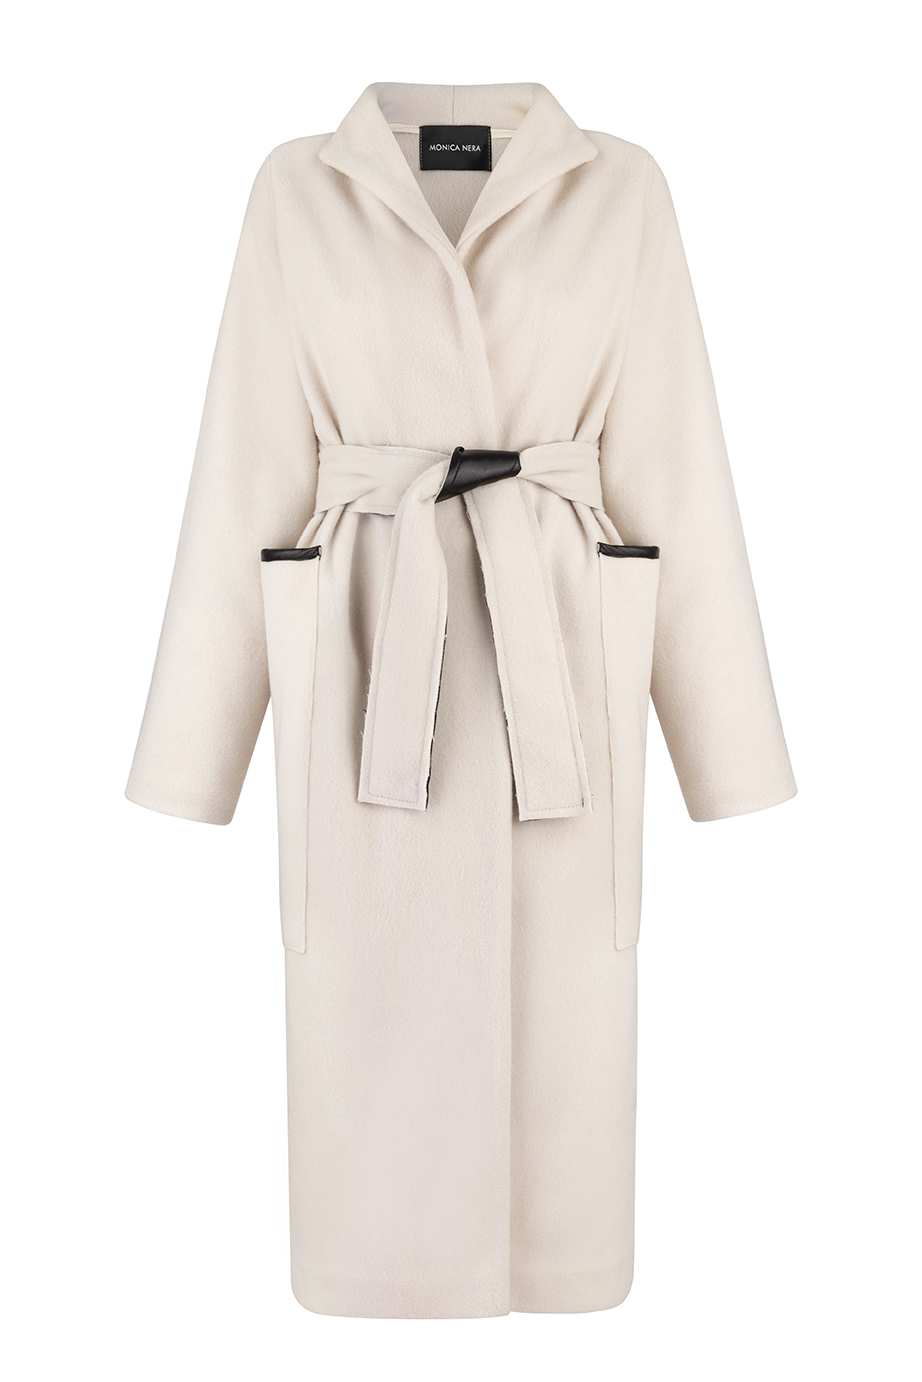 Sammy Coat by Monica Nera on curated-crowd.com